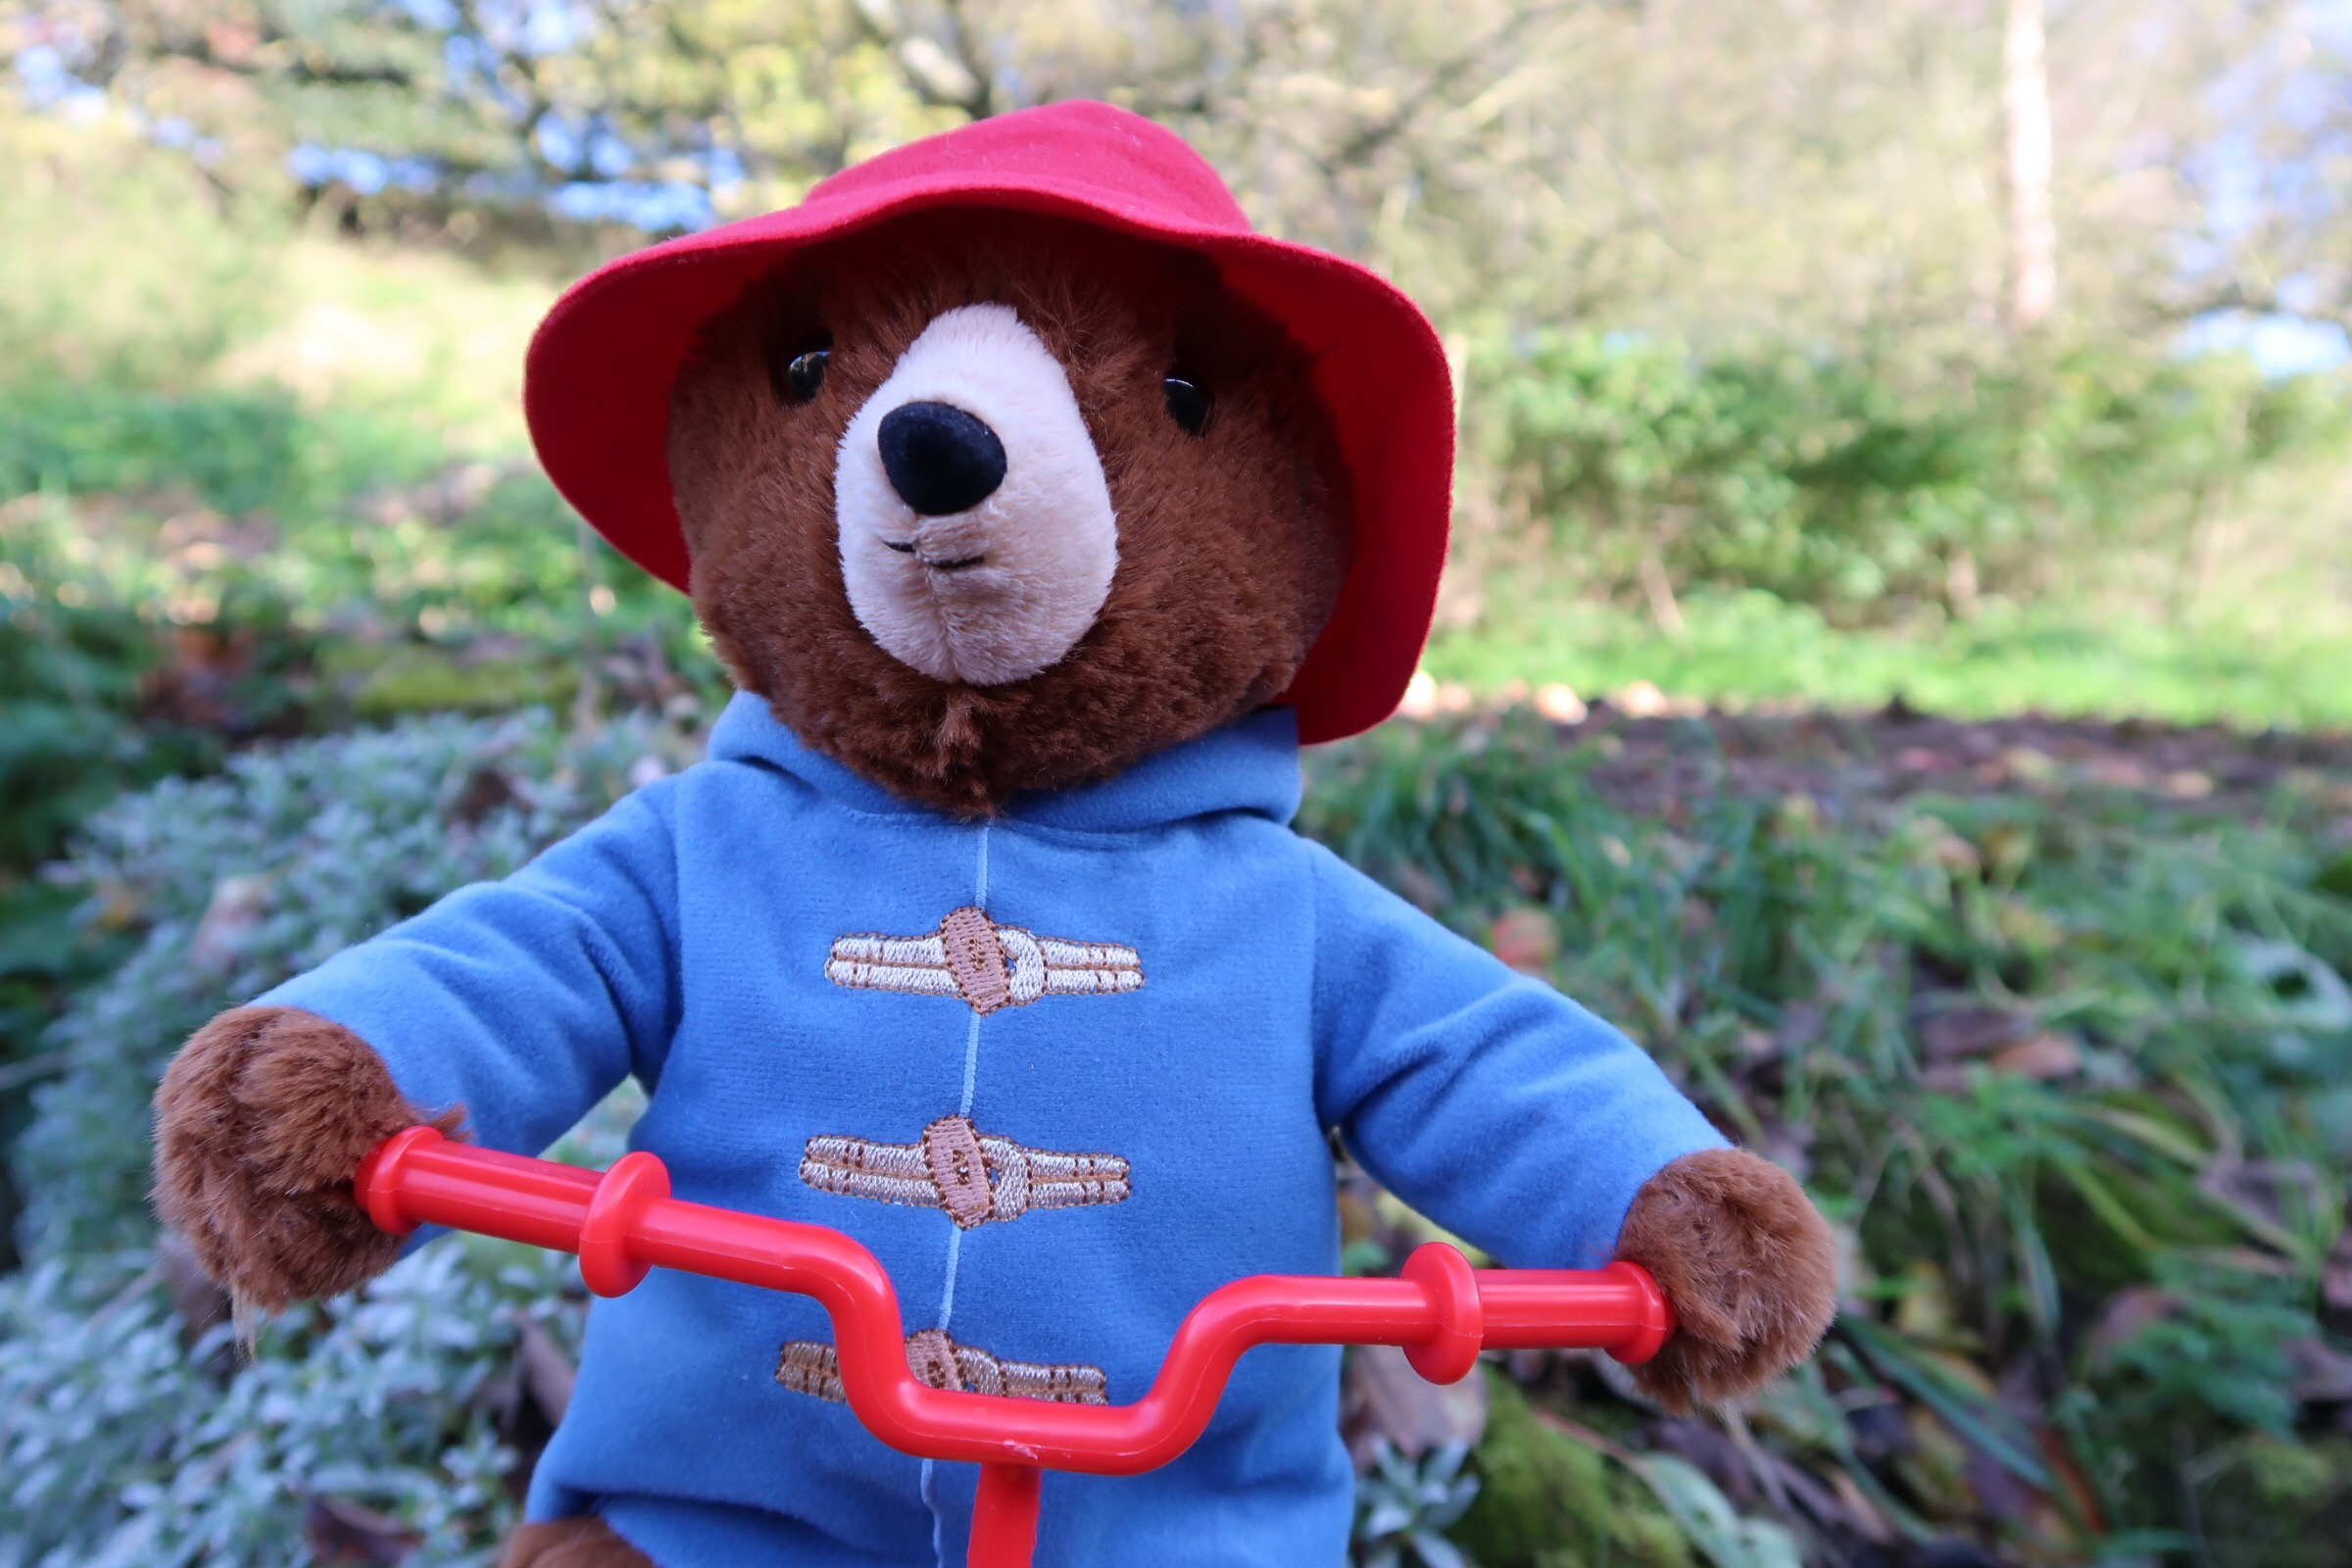 A close up of cycling Paddington with his blue duffel coat and wide brimmed red hat.